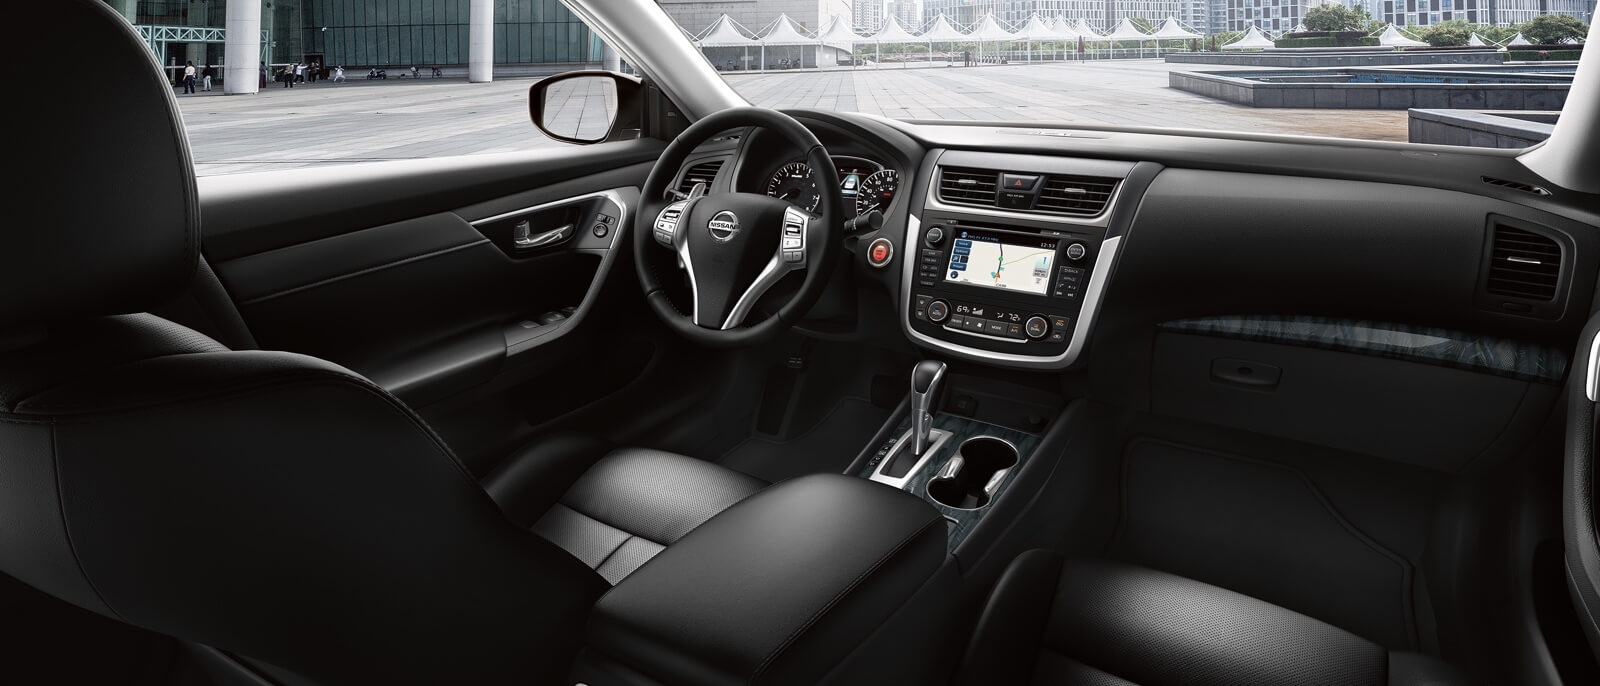 2016 Nissan Altima interior features